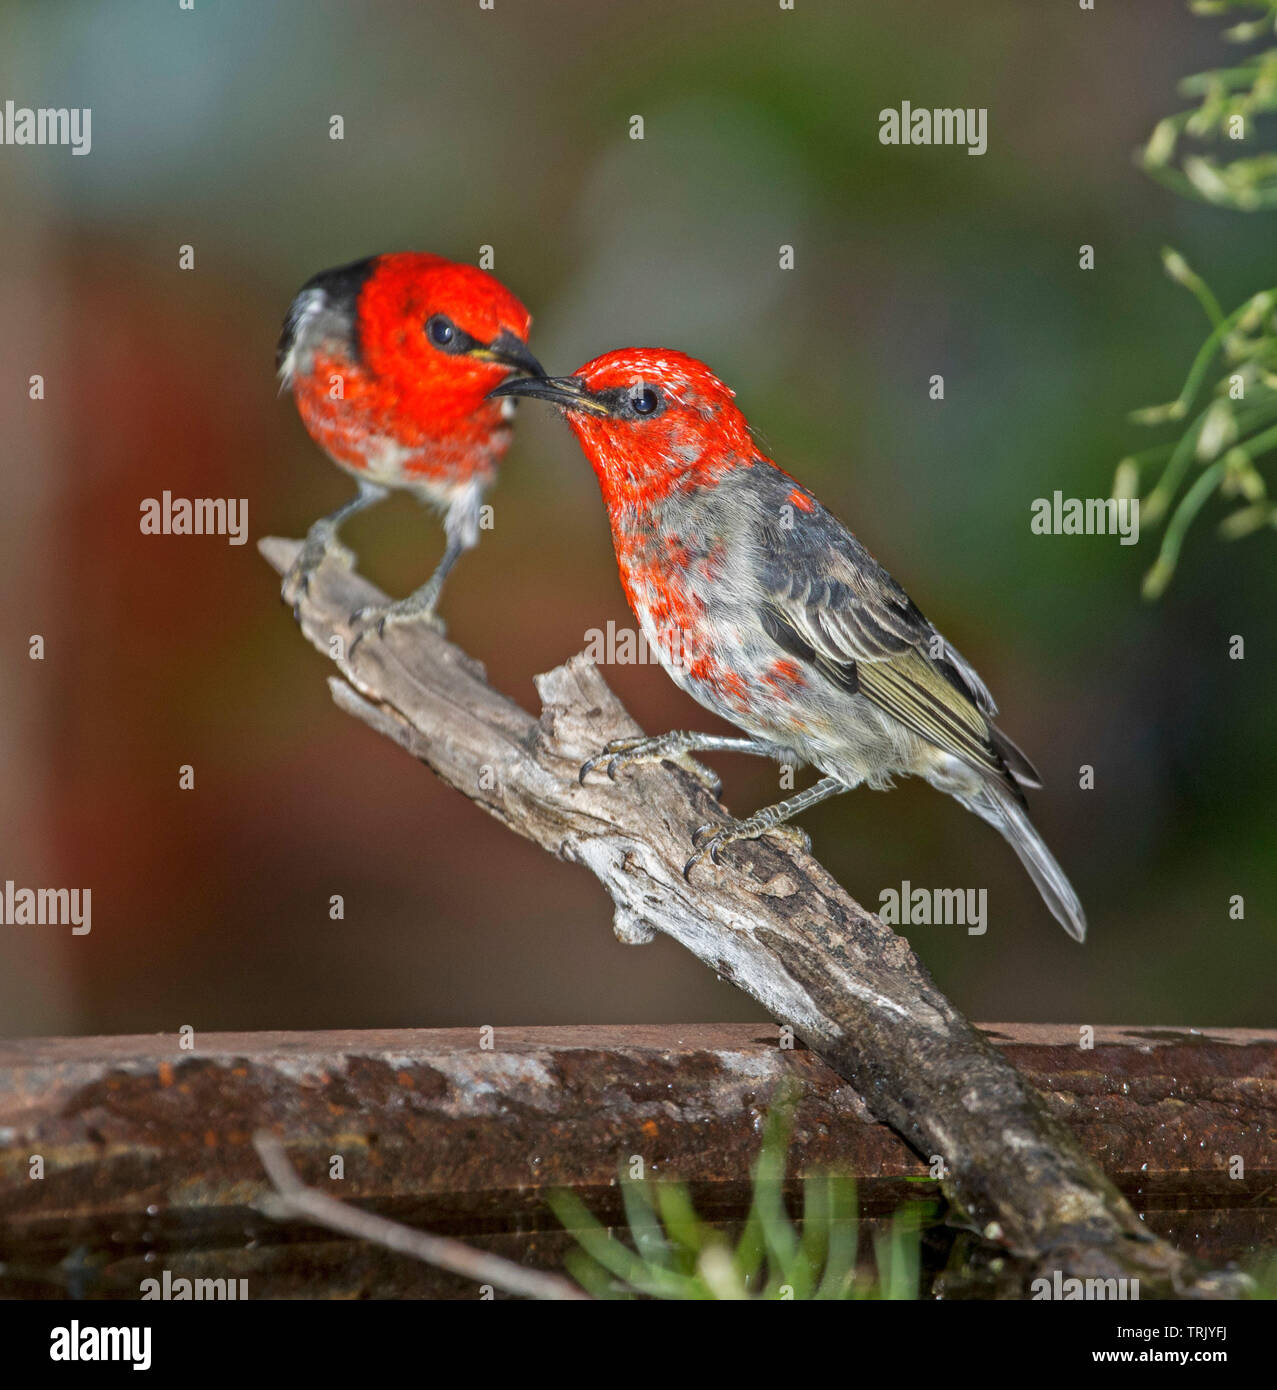 Two spectacular red and black male Australian Scarlet Honeyeaters, Myzomela sanguinolenta, at garden bird bath - Stock Image